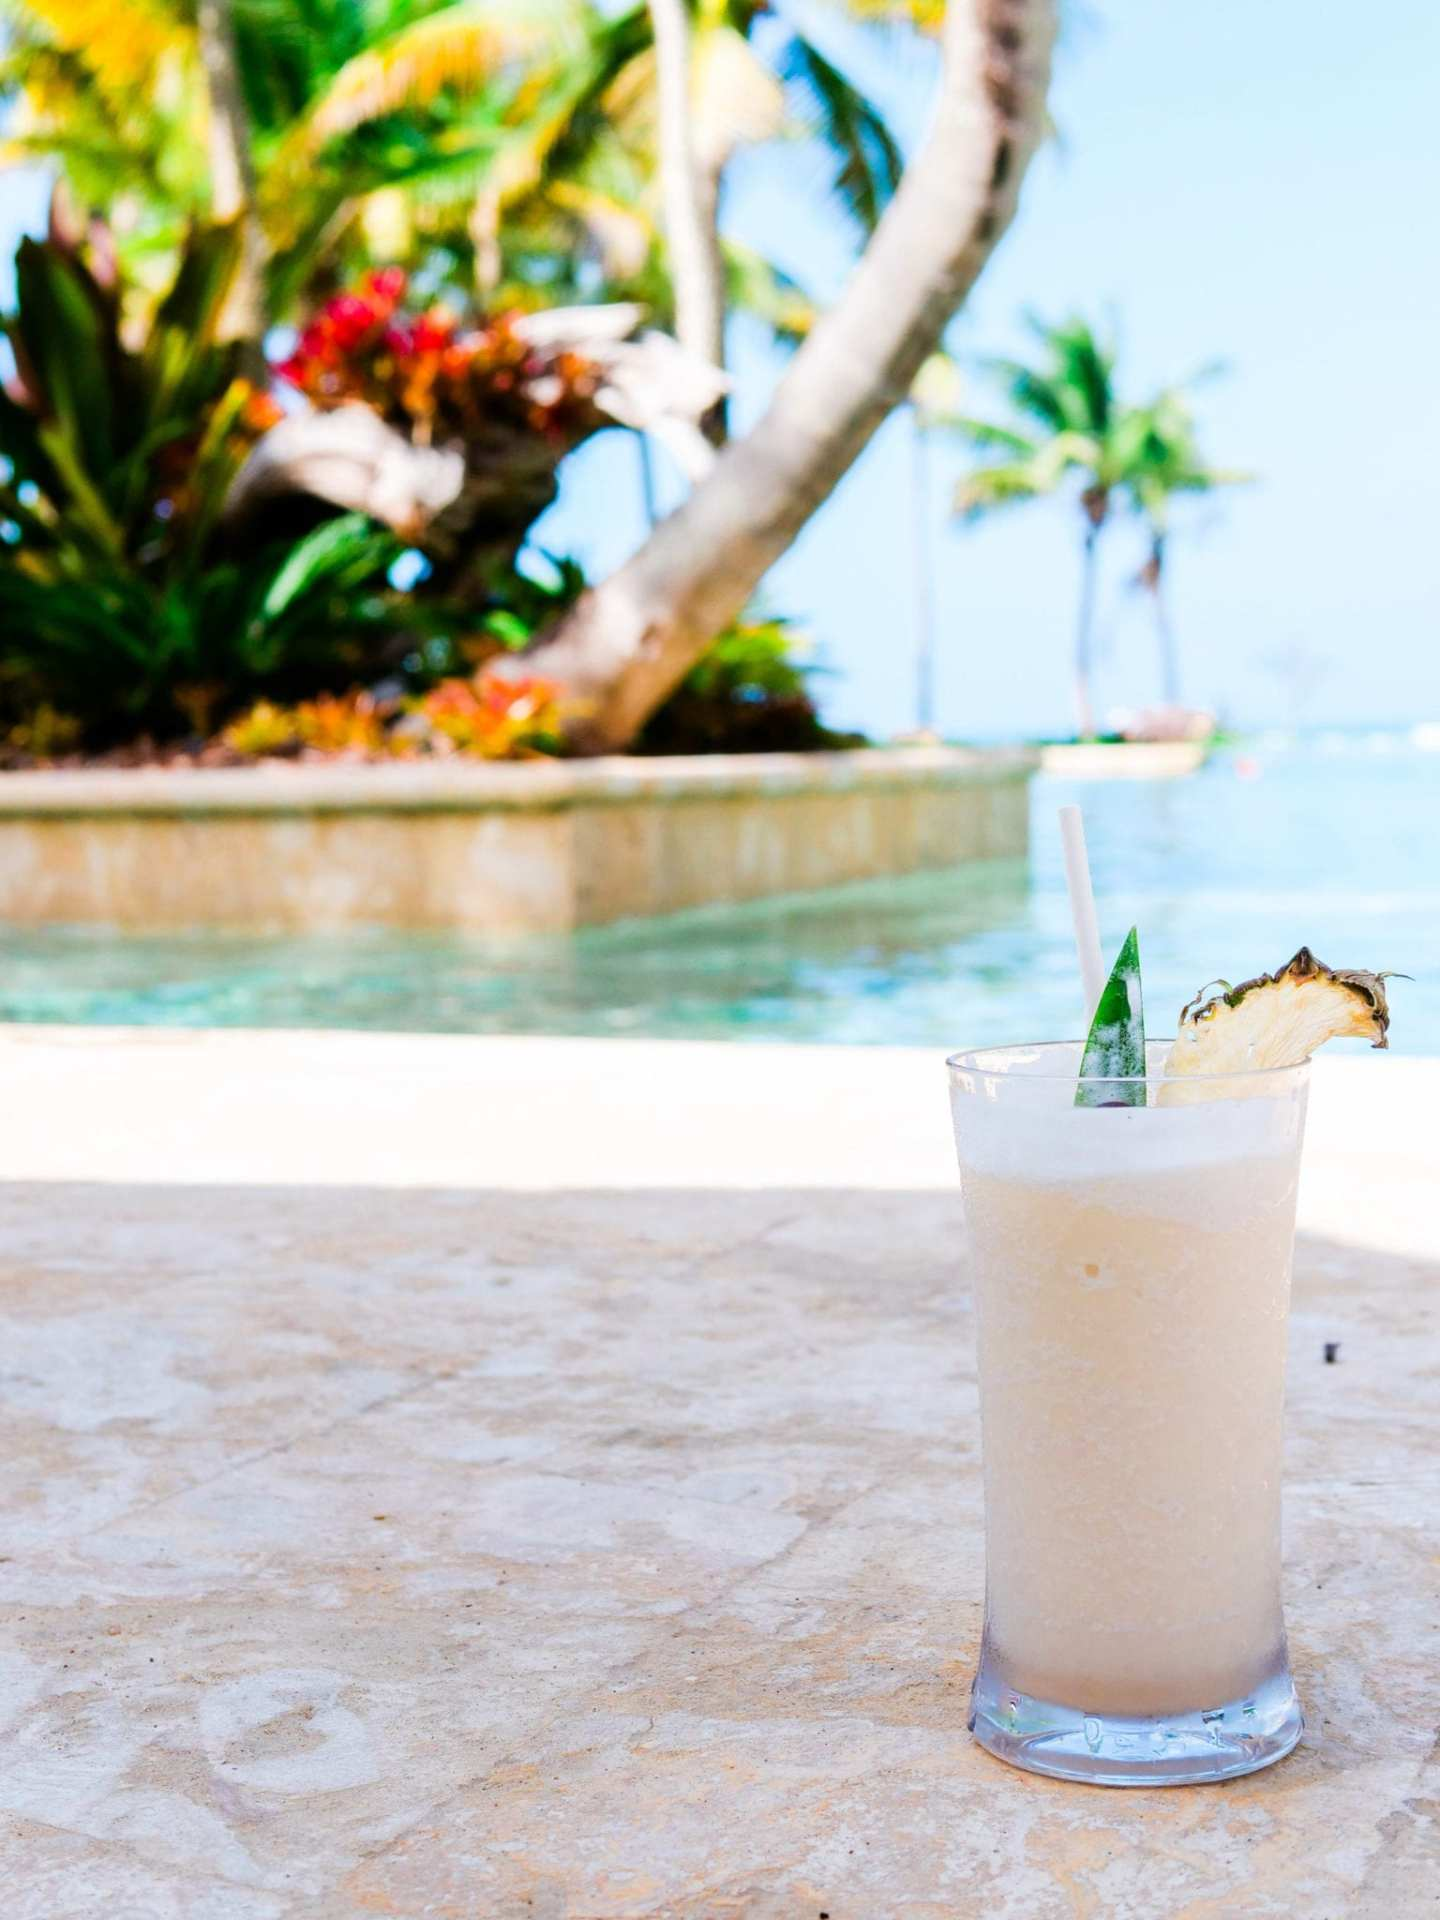 Dorado Beach Pool. What to bring on a beach vacation. My must have essentials for a week on a vacation by the ocean or pool!